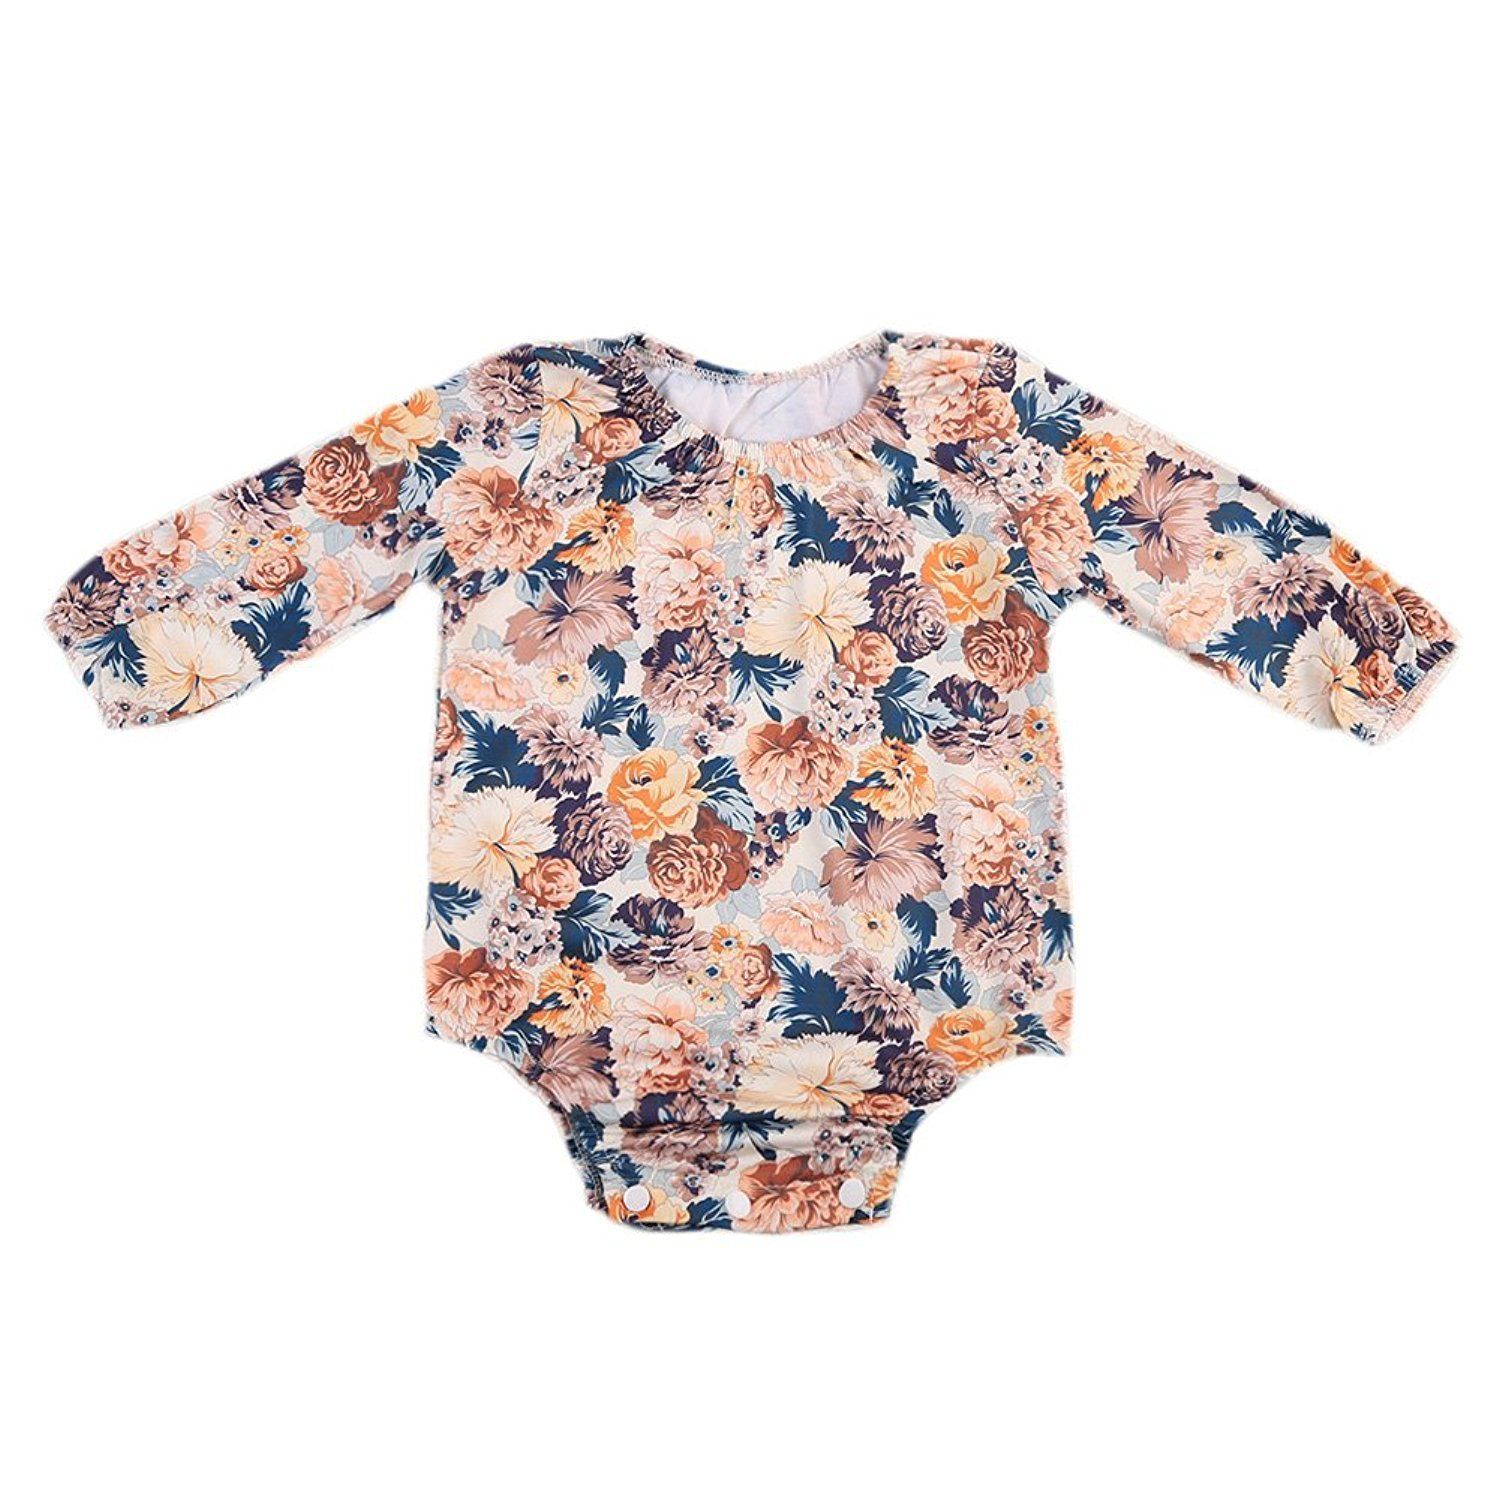 GSHOOTS Baby Girls Long Sleeve Floral Romper Bodysuit Autumn Outfit